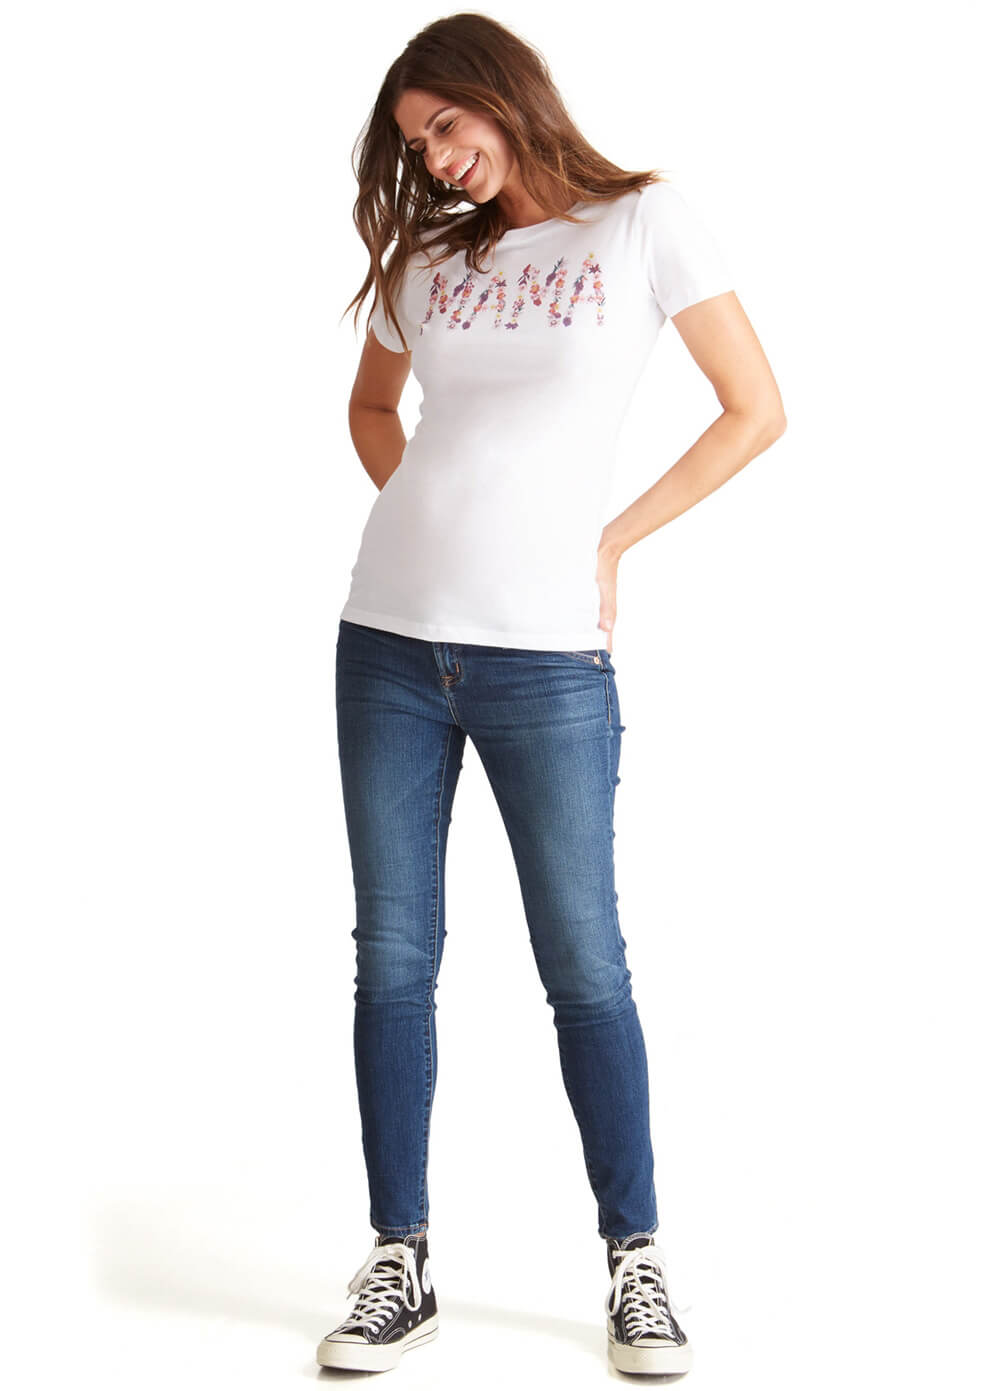 Mama Graphic Maternity Tee in White by Ingrid & Isabel